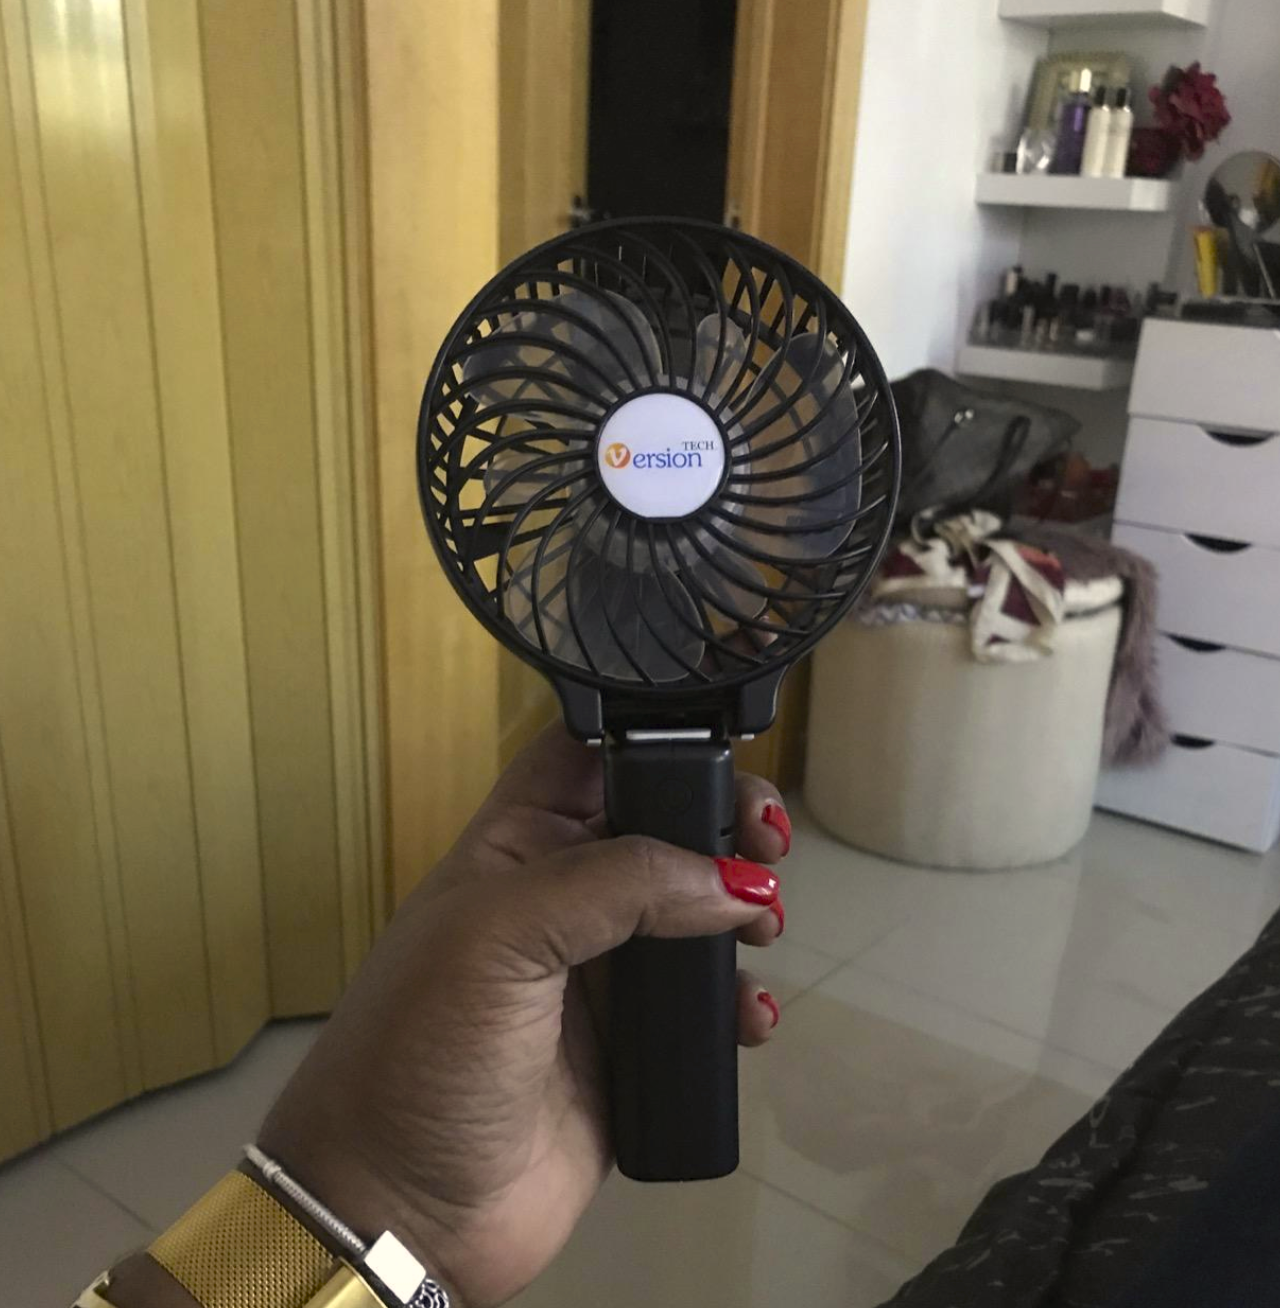 Reviewer's hand holding the circular fan with a handle in black